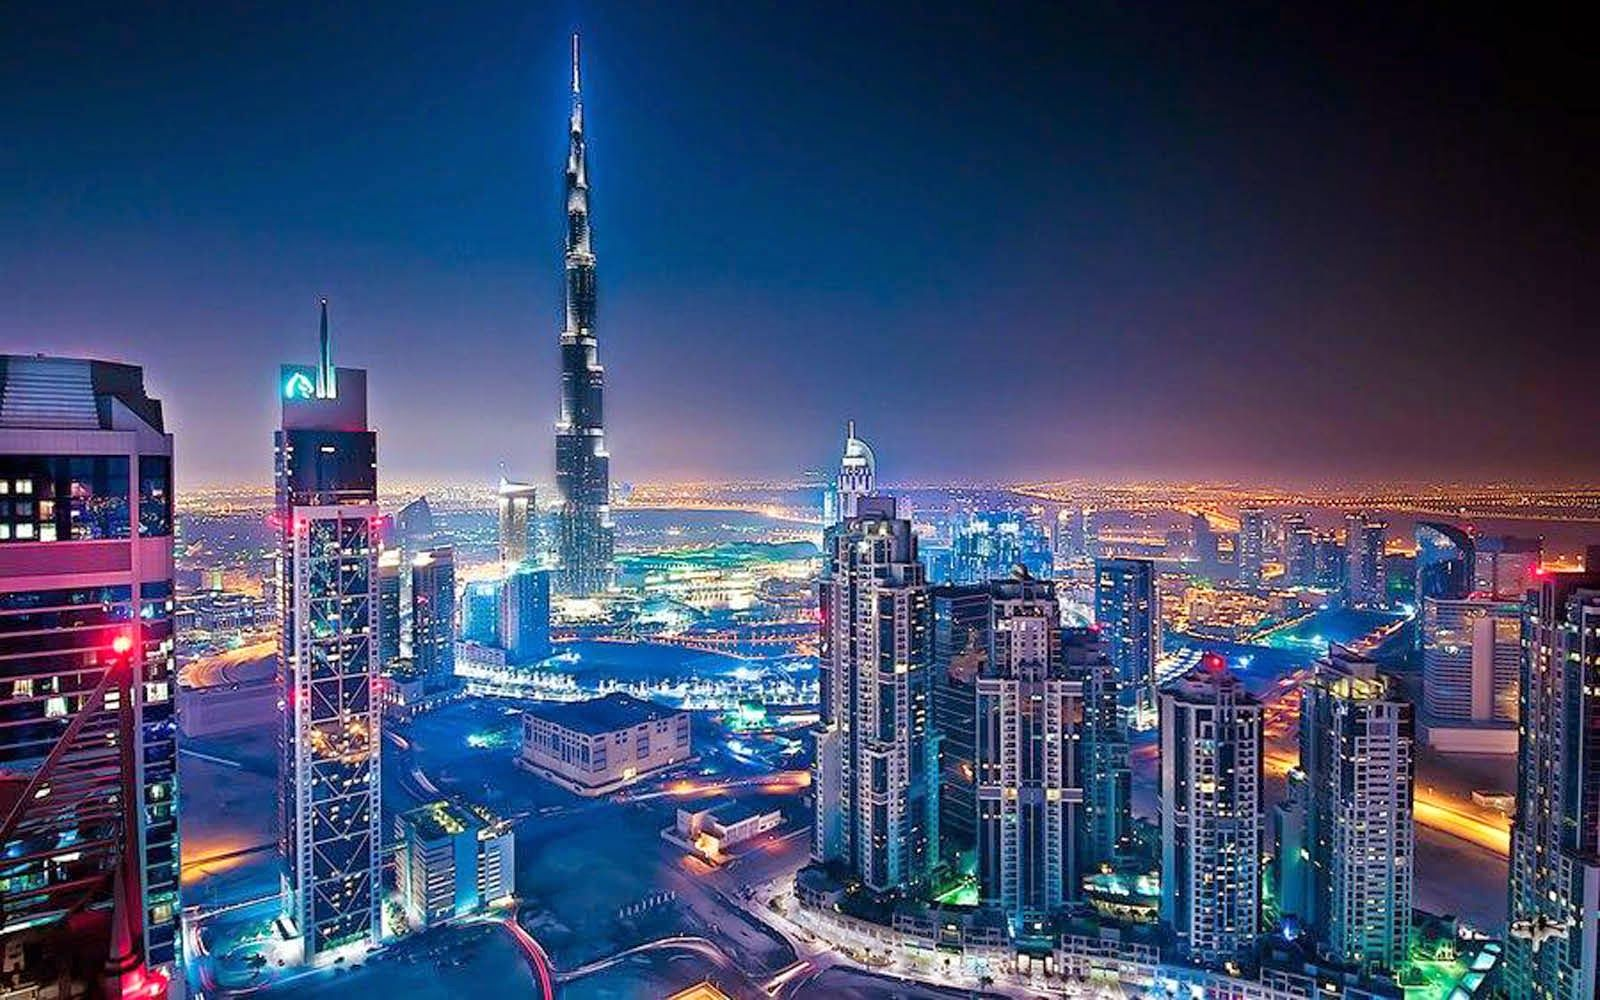 burj dubai hd wallpapers travel hd wallpapers 1024×768 burj khalifa